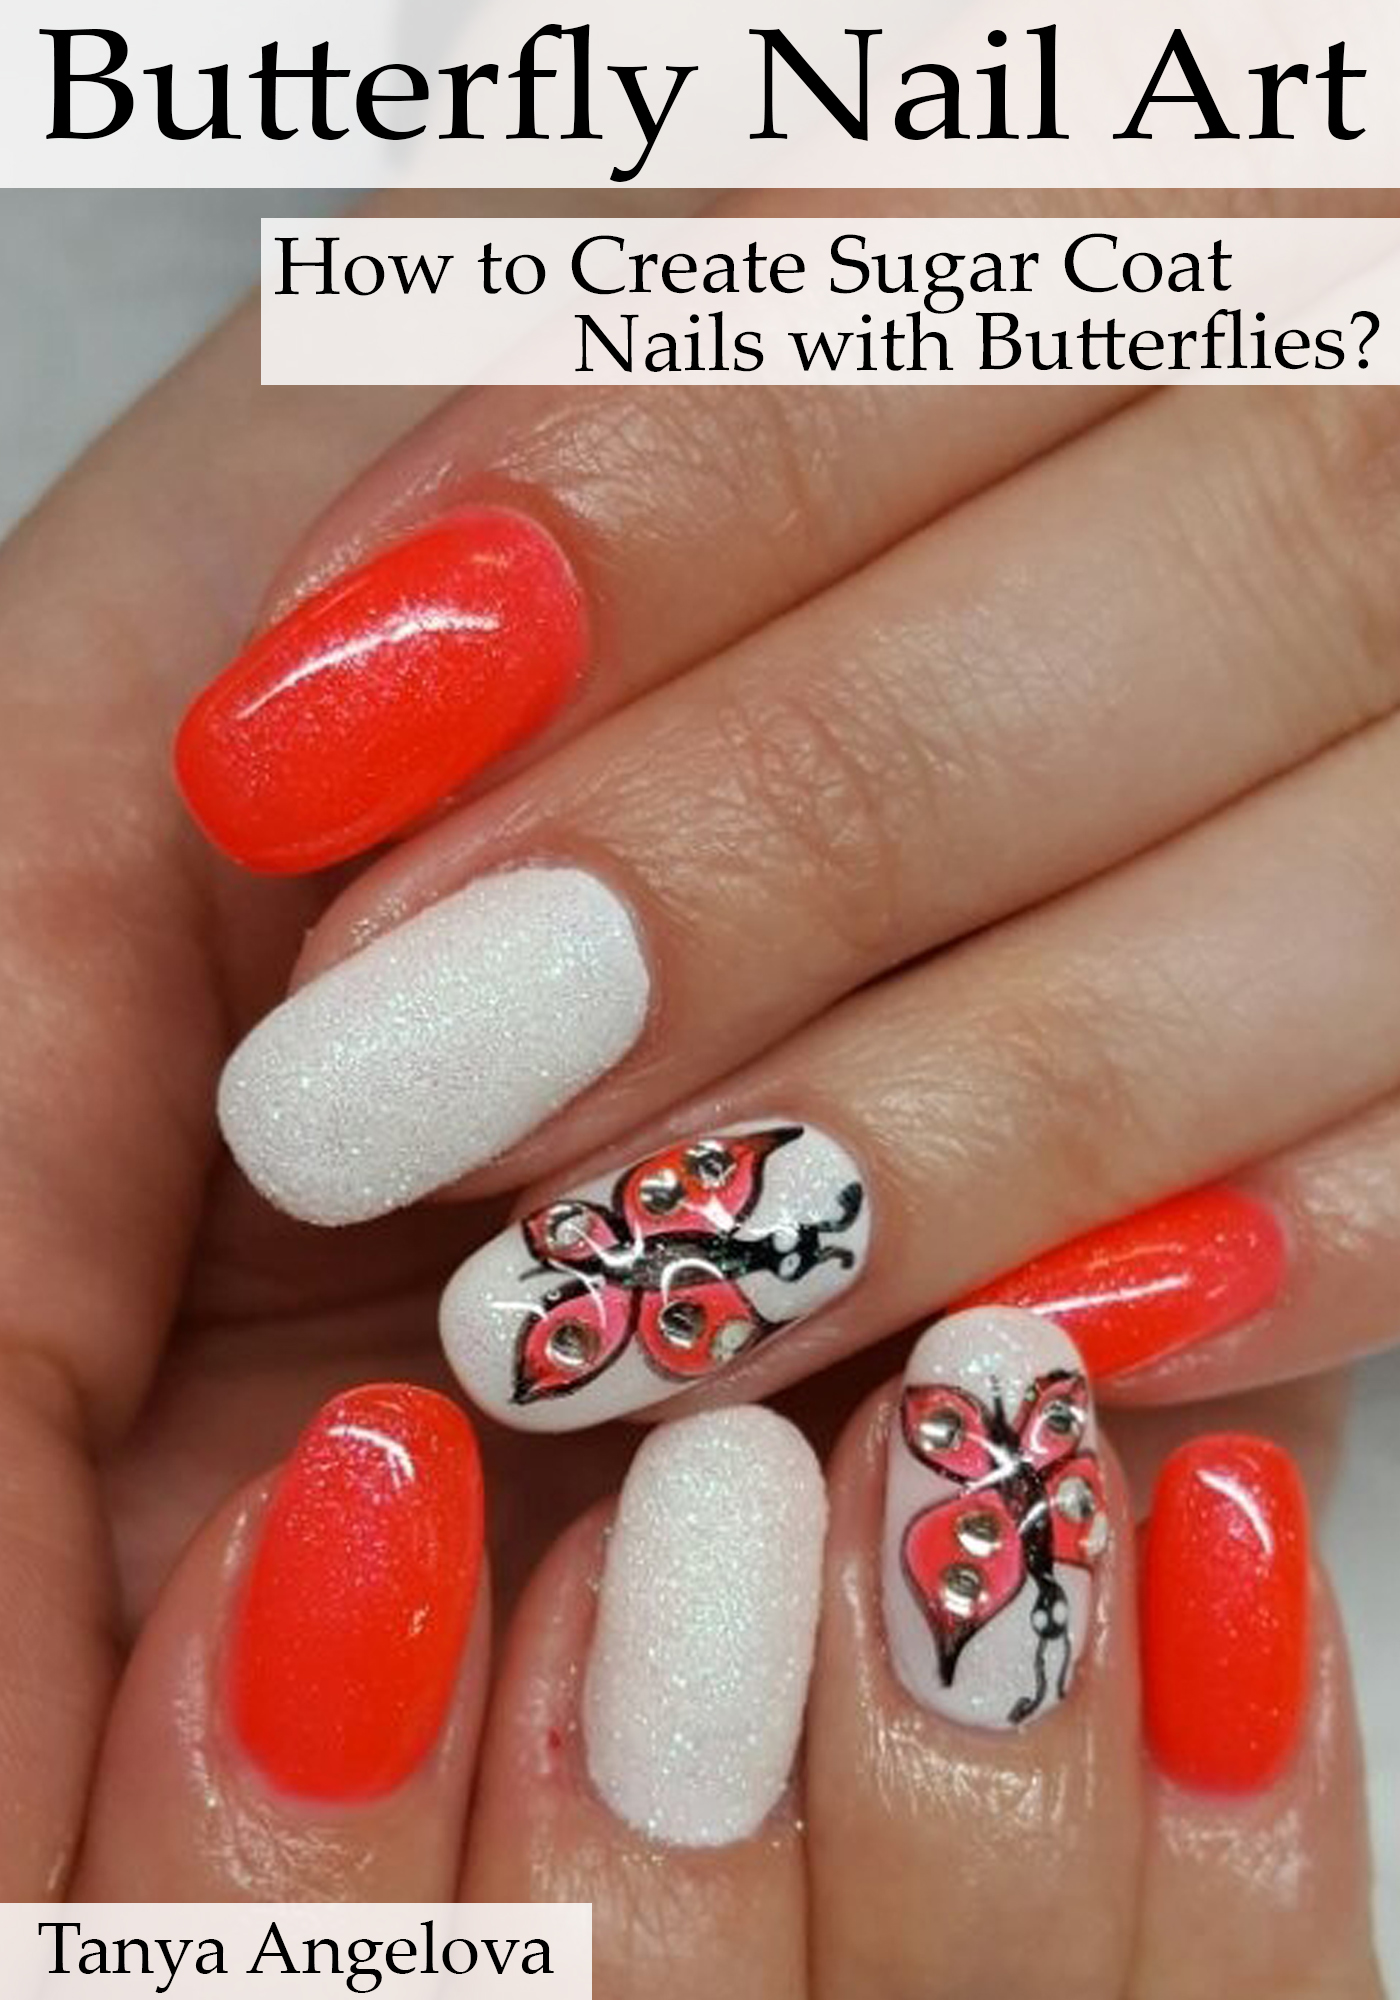 Smashwords Butterfly Nail Art How To Create Sugar Coat Nails With